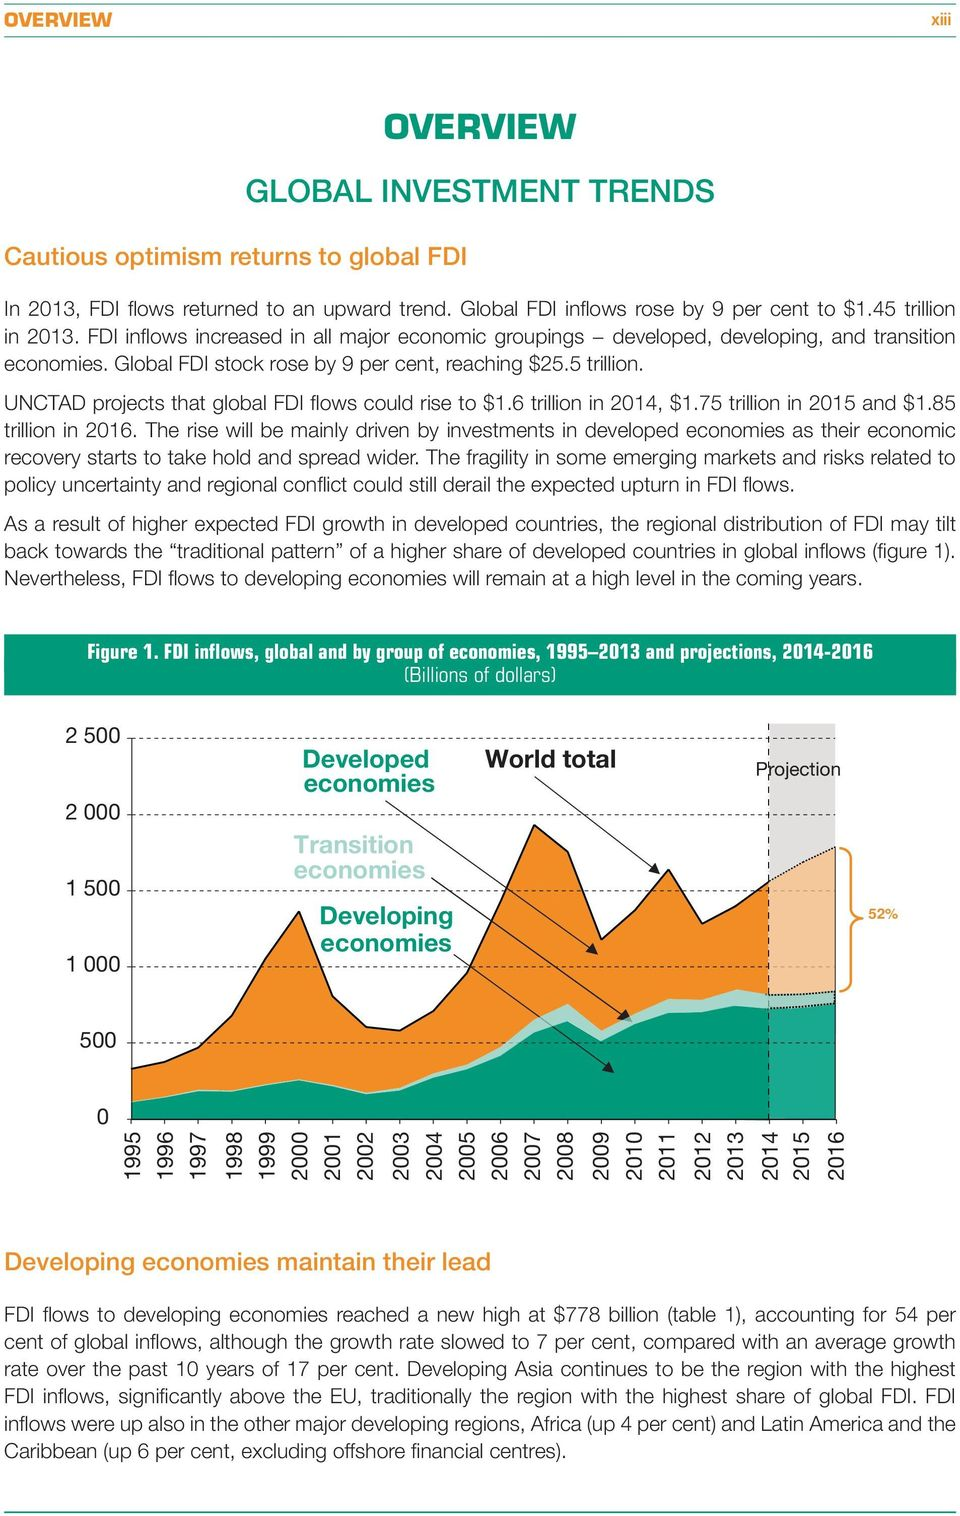 UNCTAD projects that global FDI flows could rise to $1.6 trillion in 2014, $1.75 trillion in 2015 and $1.85 trillion in 2016.